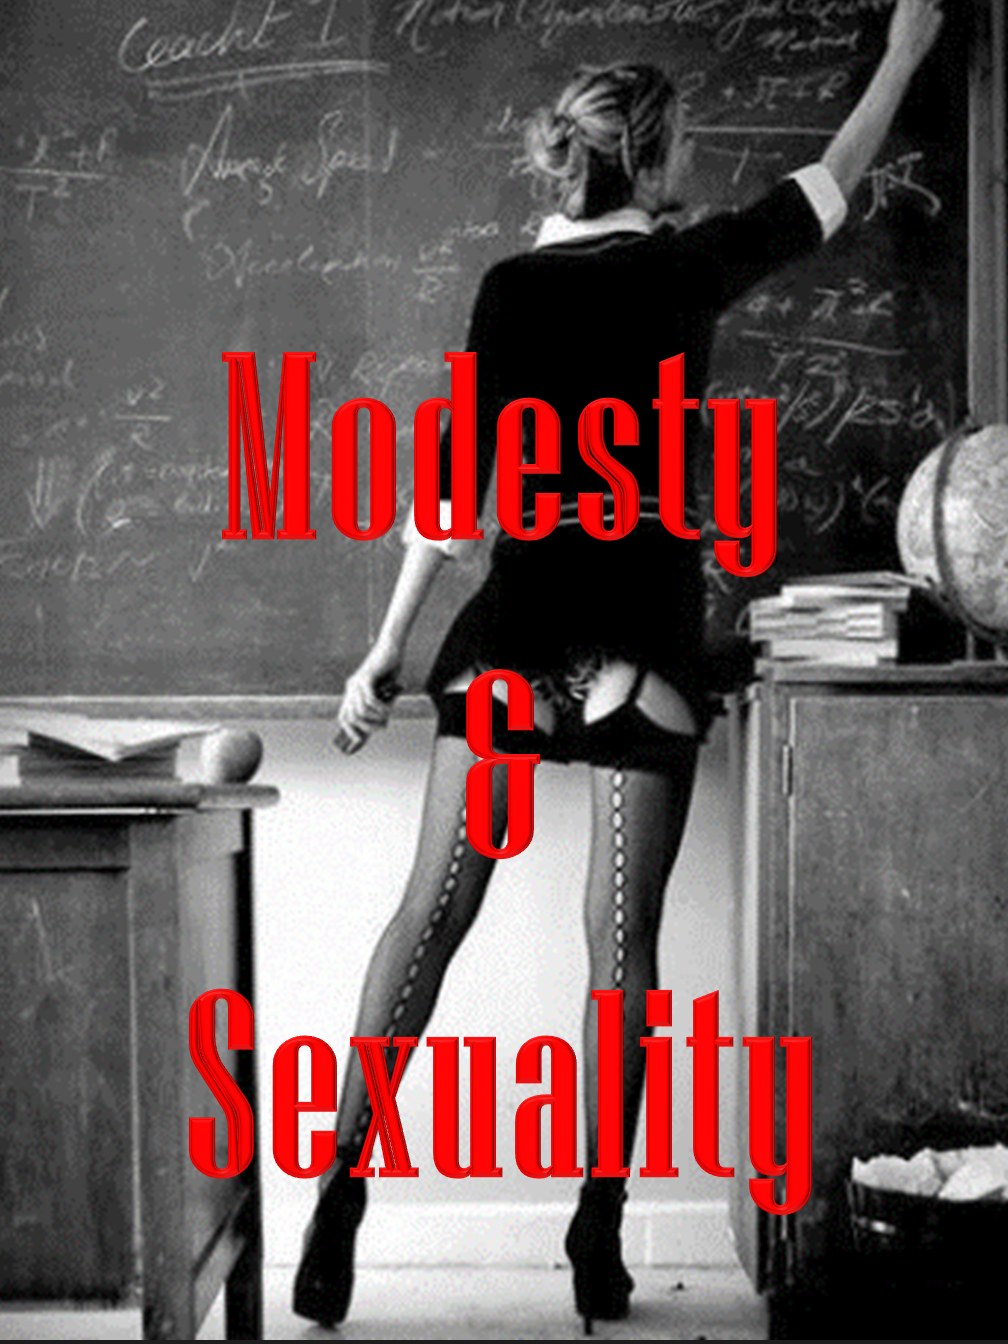 Modesty&Sexuality